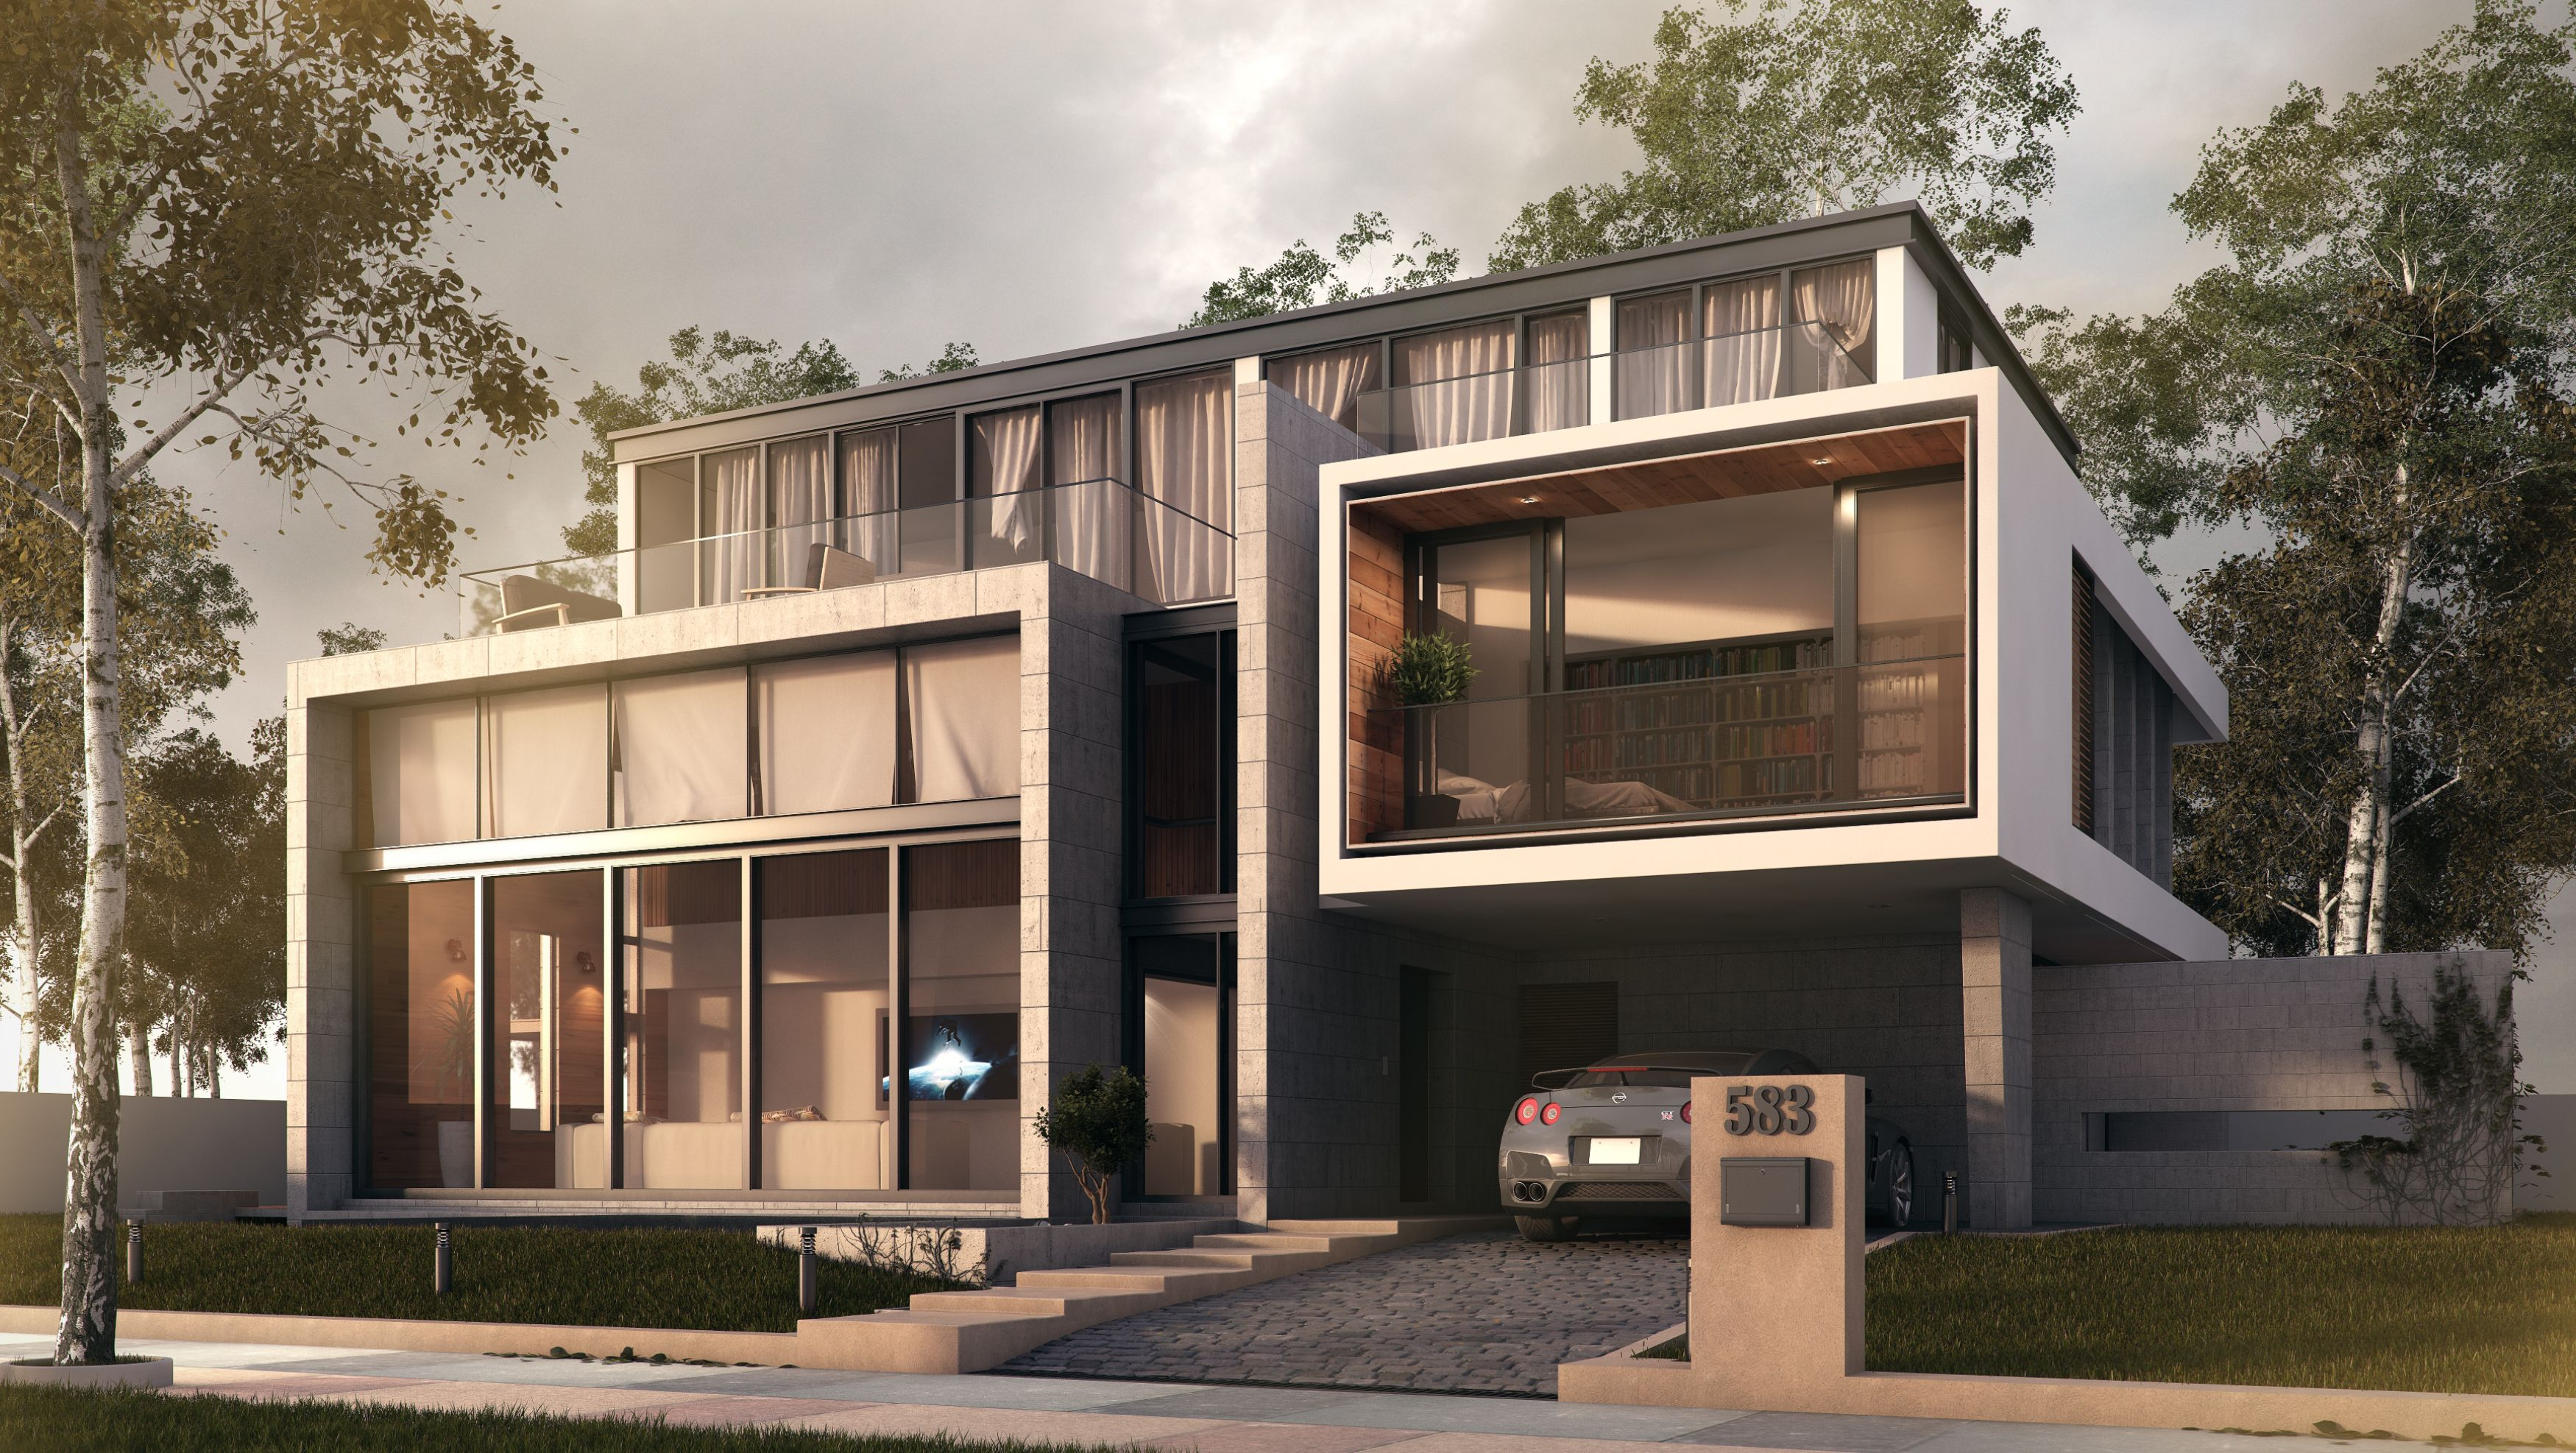 3ds max vray photoshop archviz pinterest 3ds max for Architecture 3ds max